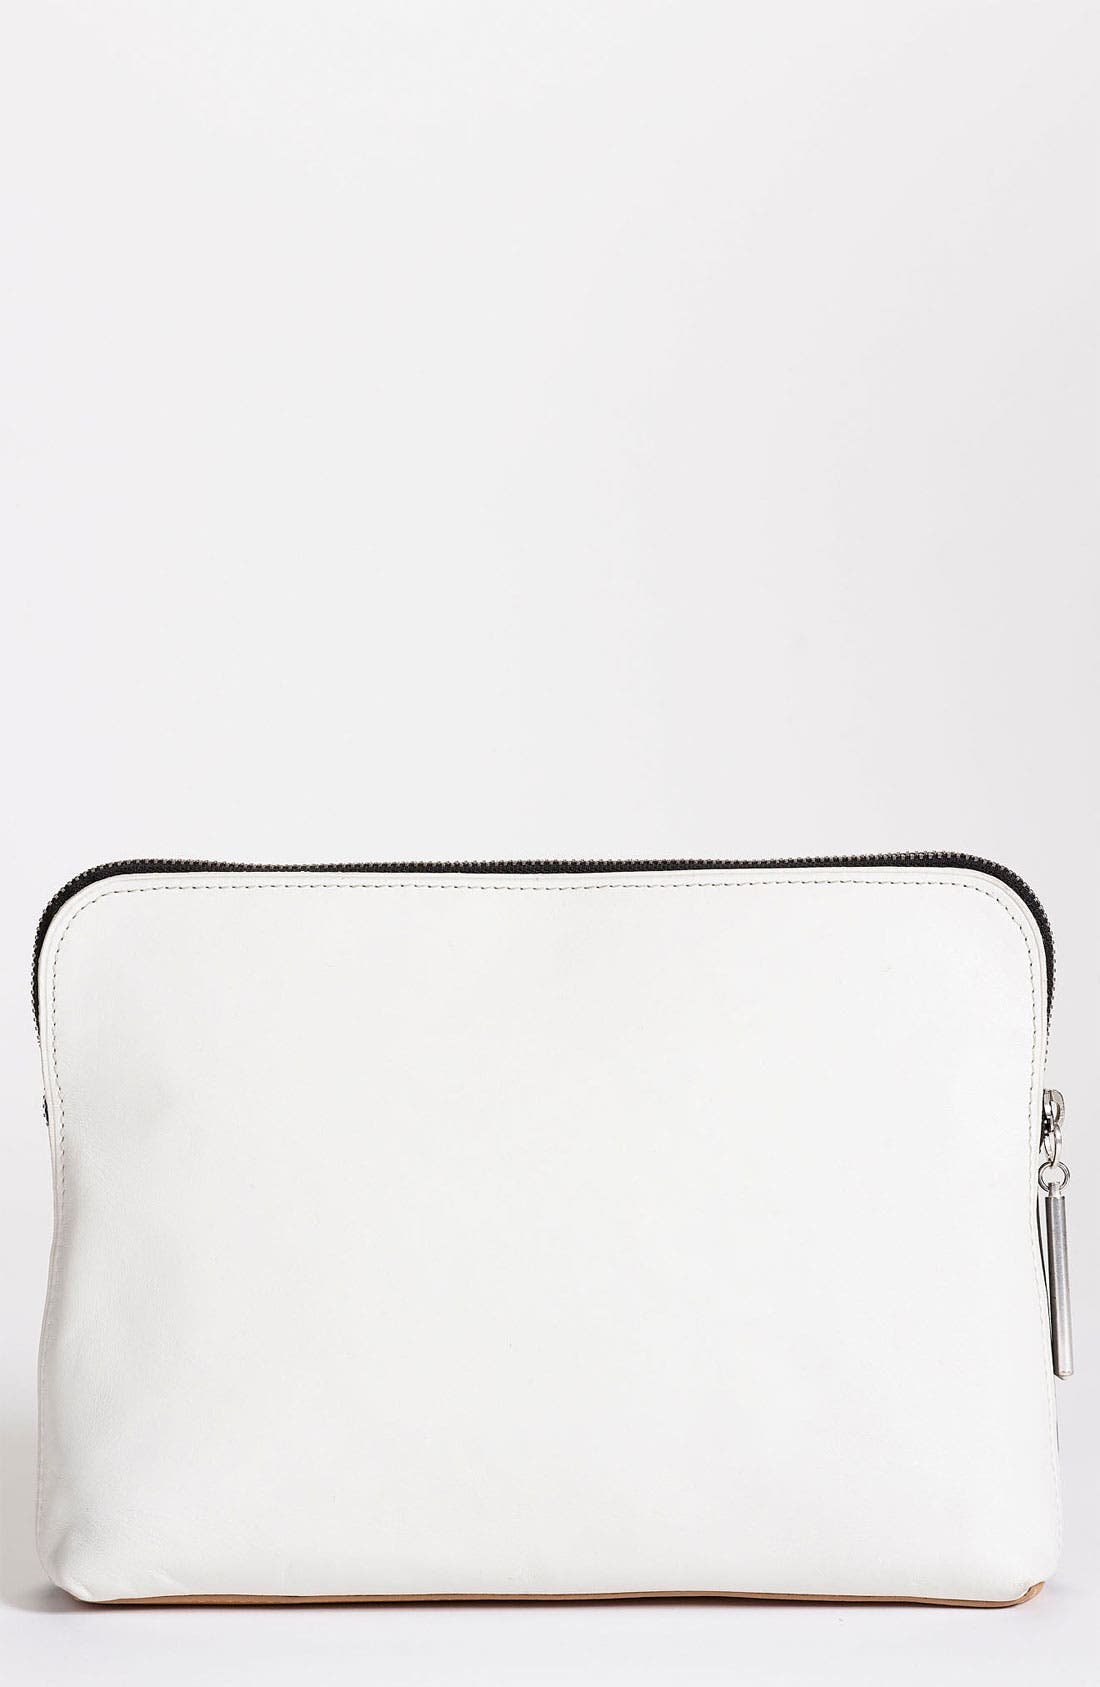 Alternate Image 1 Selected - 3.1 Phillip Lim '31 Minute' Leather Bag